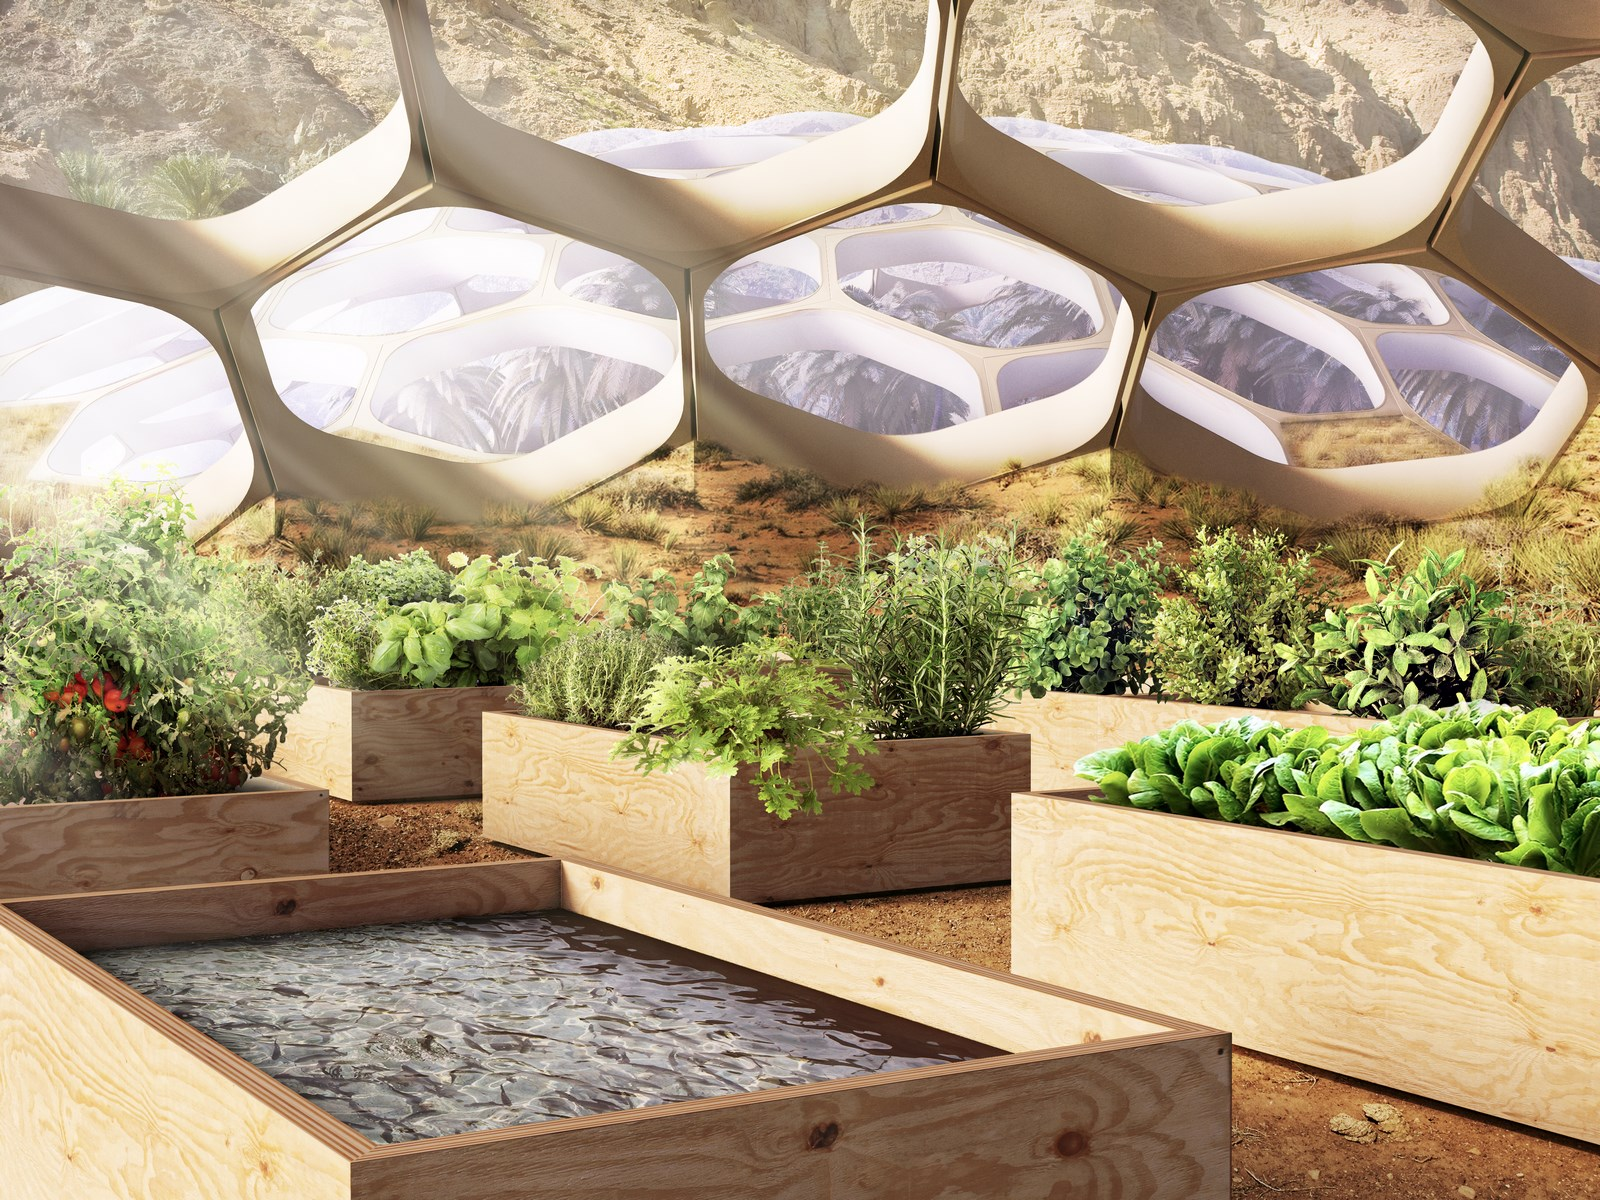 The Biodomes_Wildlife Conservation Centre_Allotments_Baharash Architecture (Copy)